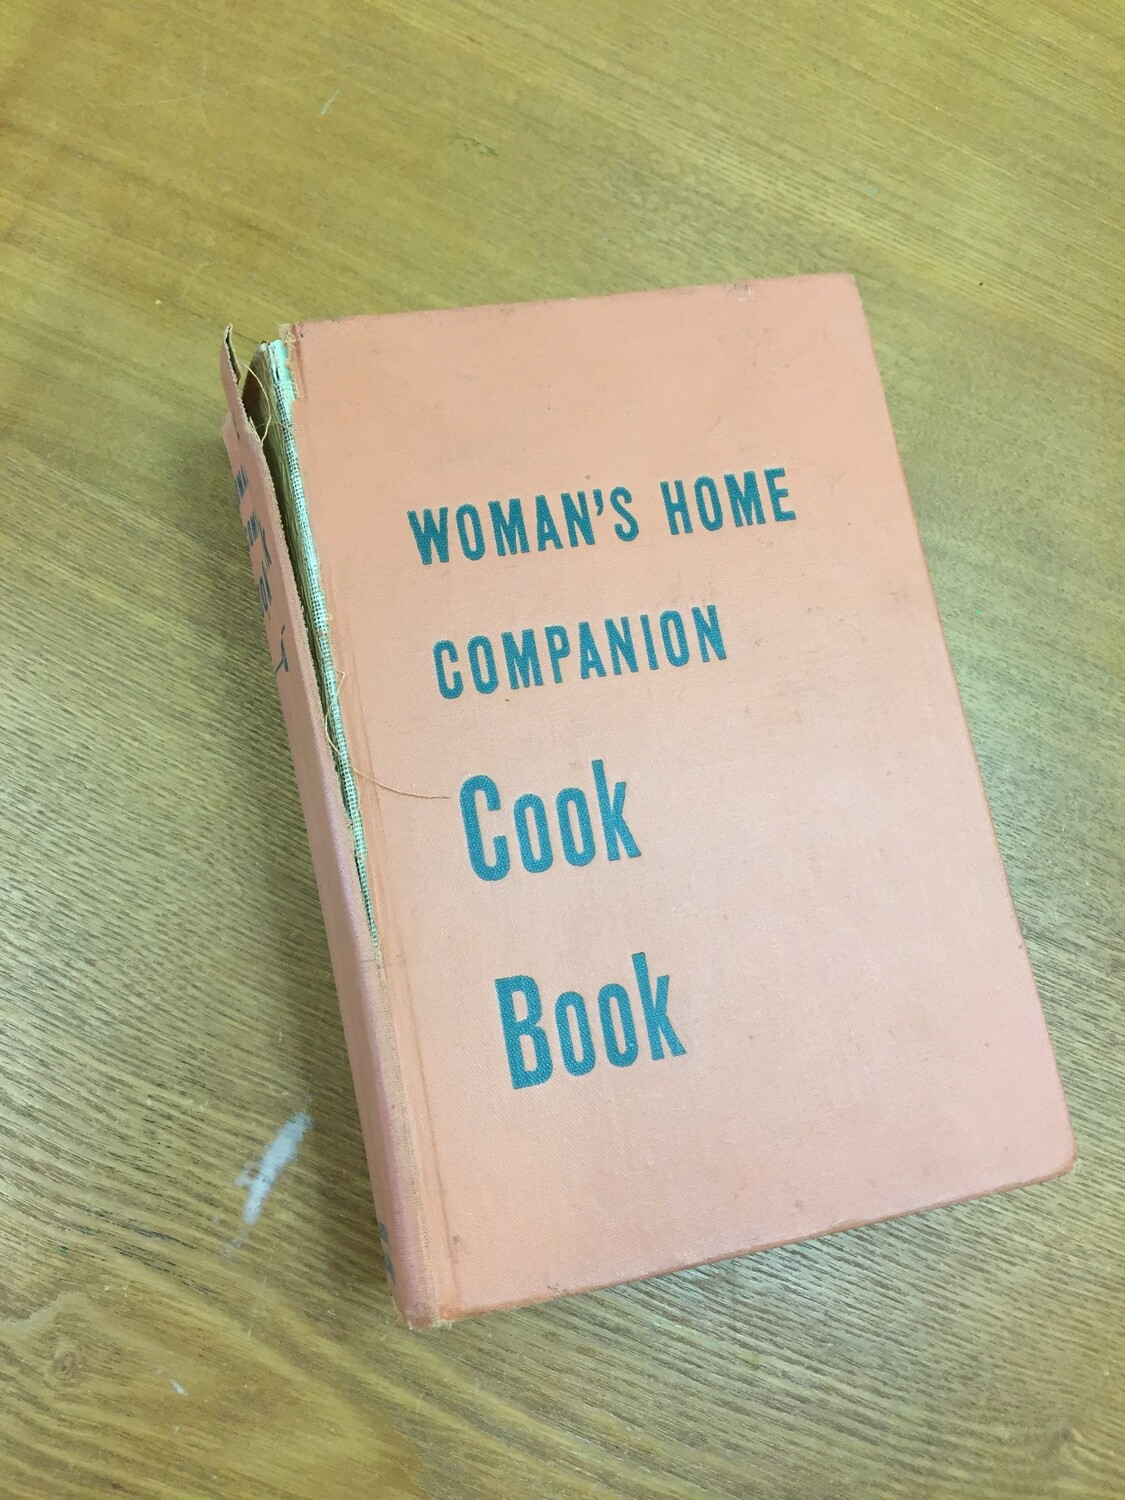 Woman's Home Companion Cook Book